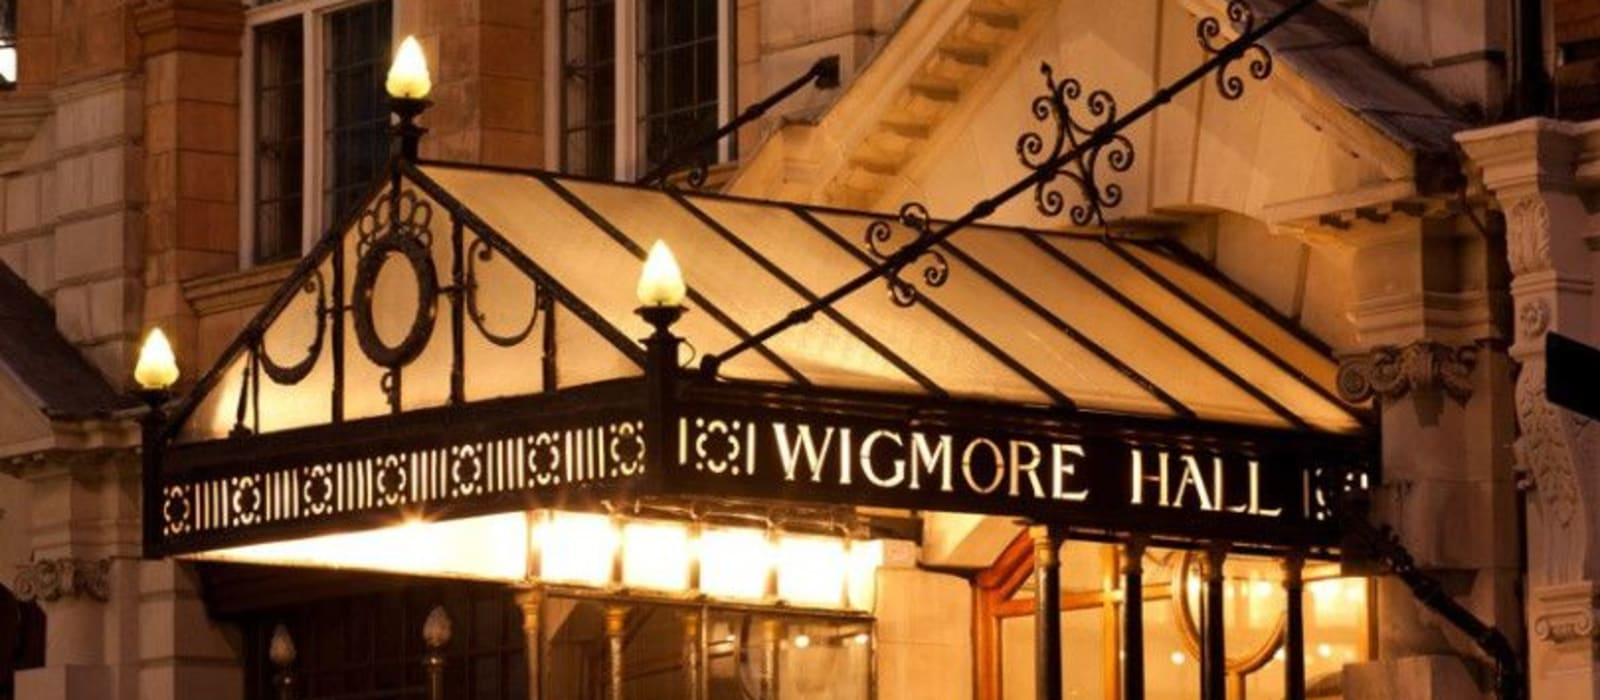 Entrance to Wigmore Hall